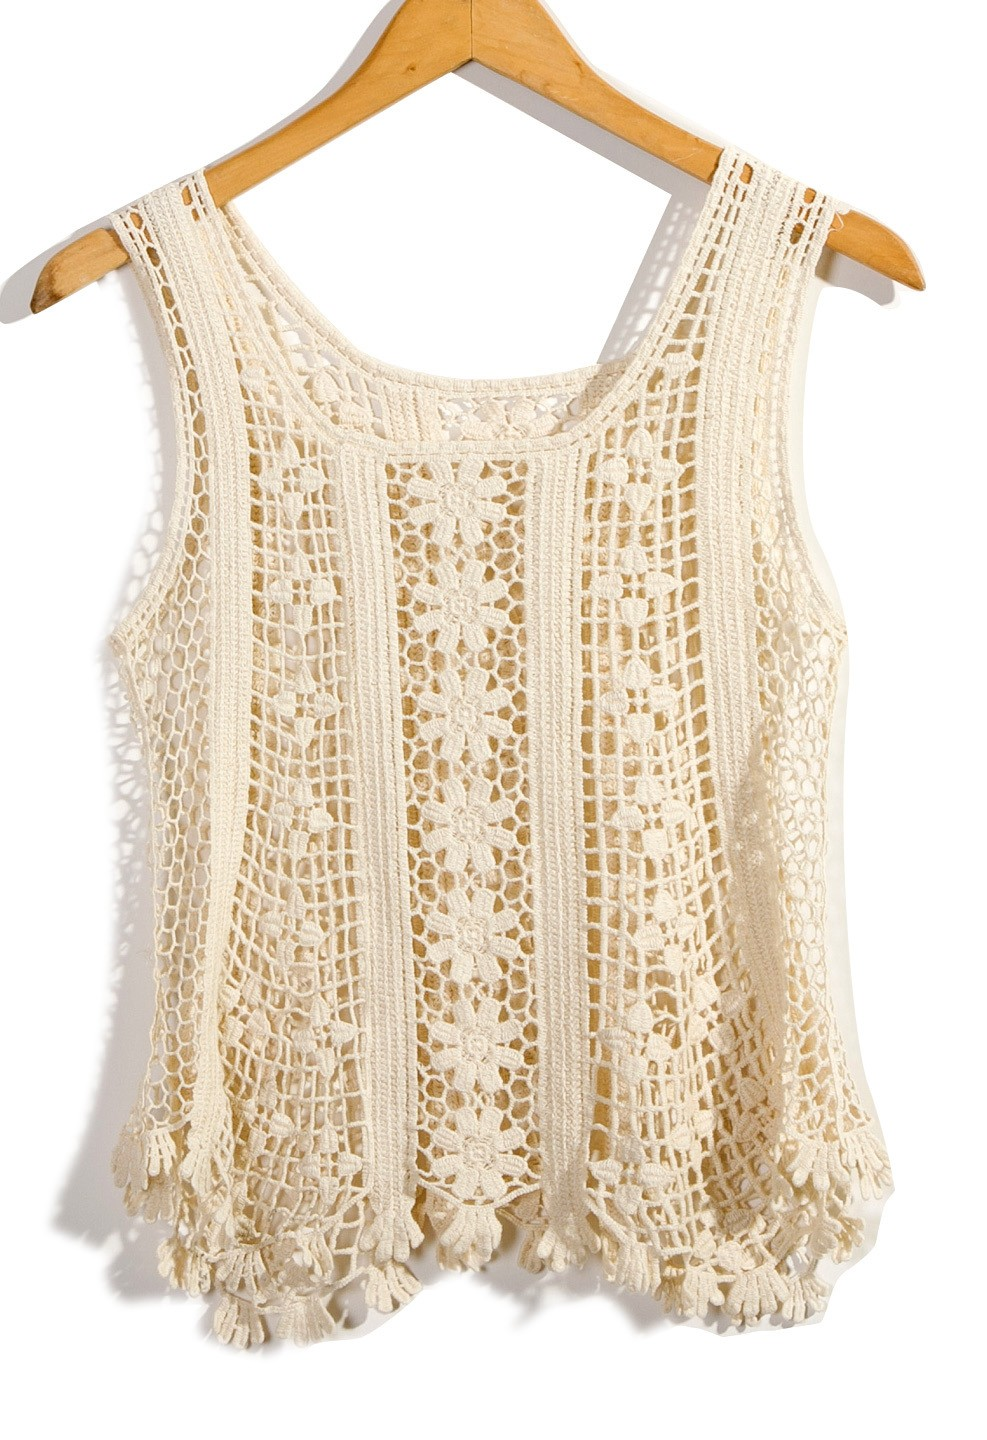 Crocheting On Top Of Crochet : ... white Sleeveless Top - Ivory Floral Sleeveless Crochet Top UsTrendy